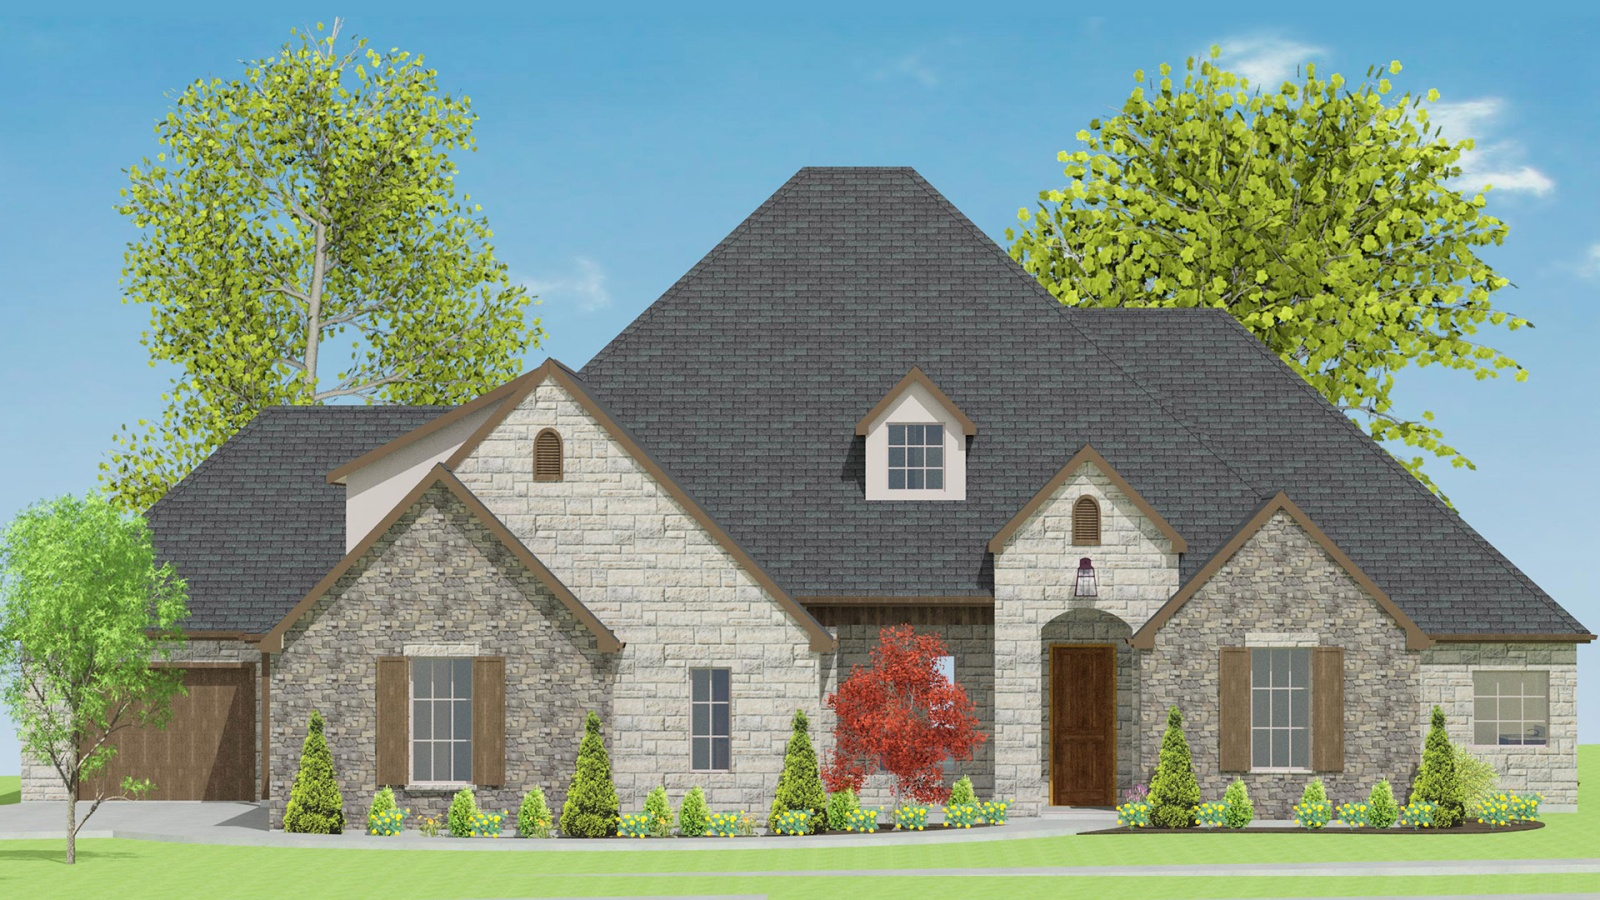 3 Bedrooms Bedrooms, ,3 BathroomsBathrooms,Custom Home,Home Plans,1034